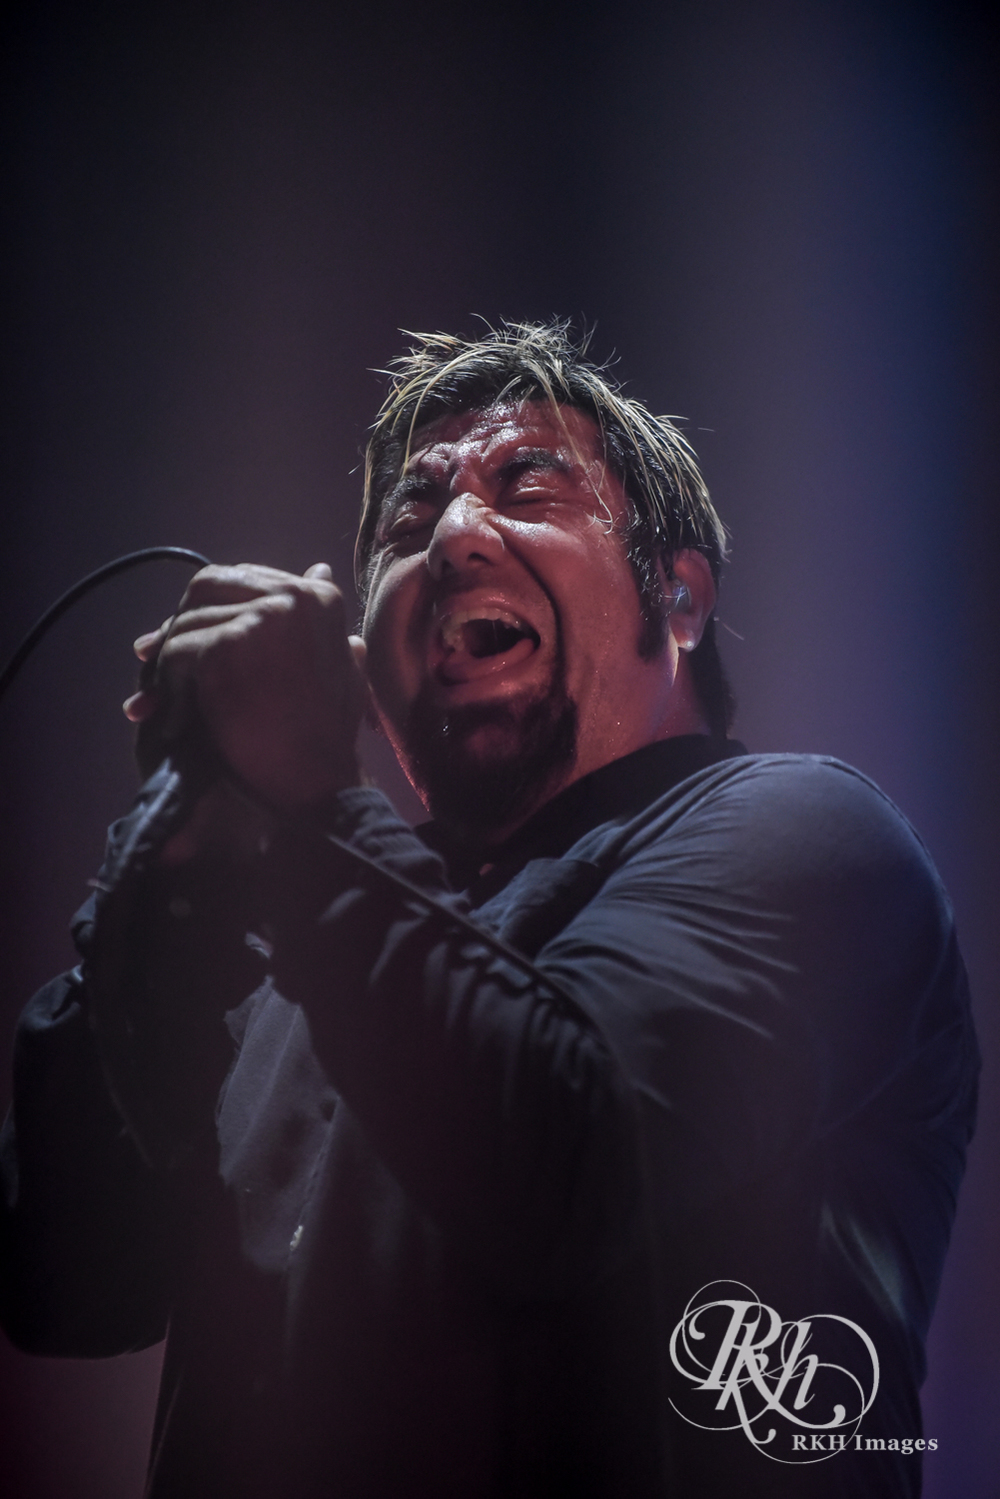 deftones rkh images (30 of 33).jpg